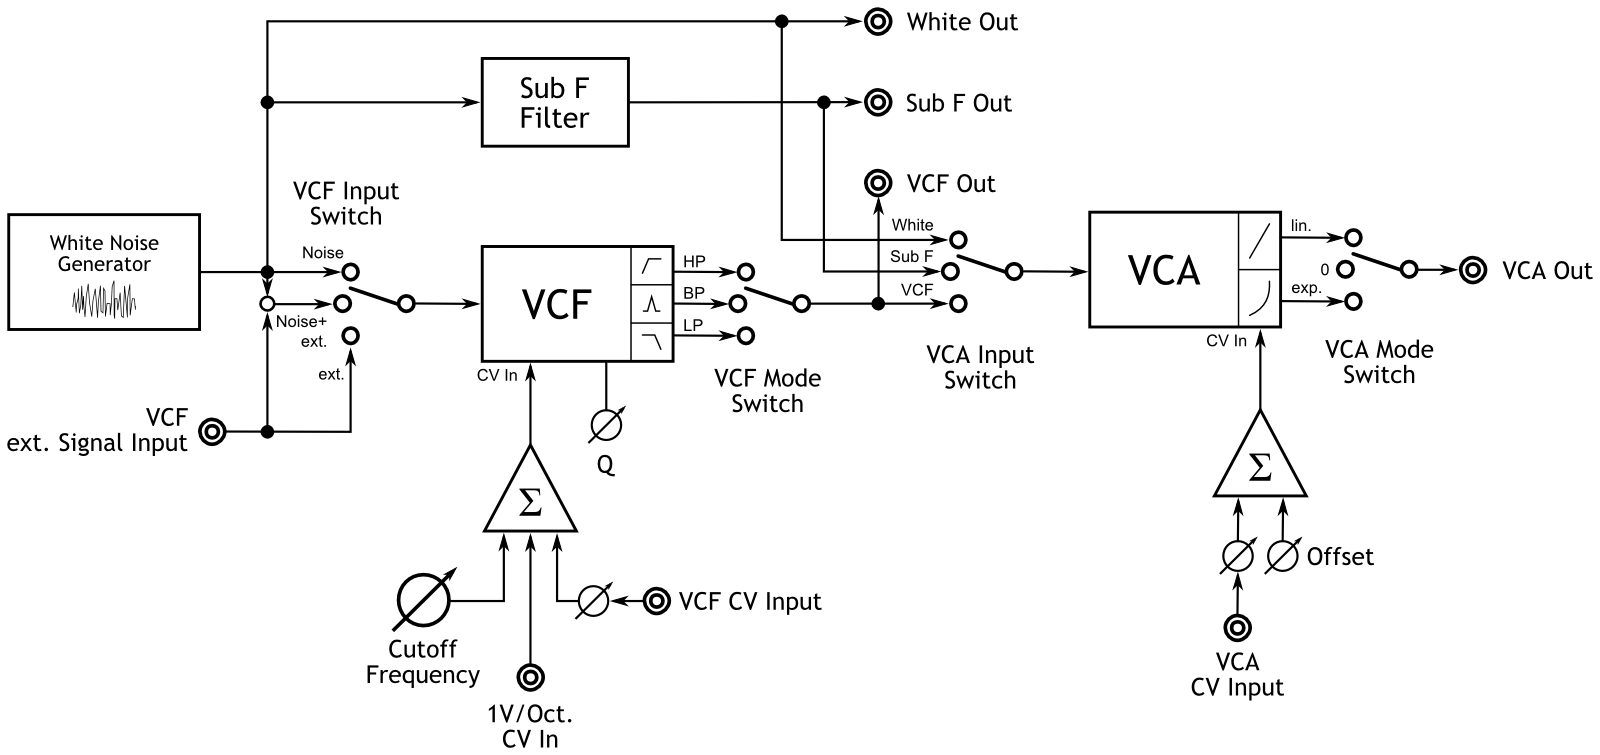 Noise VCA - Noise Generator with VCF and VCA   CG Products on